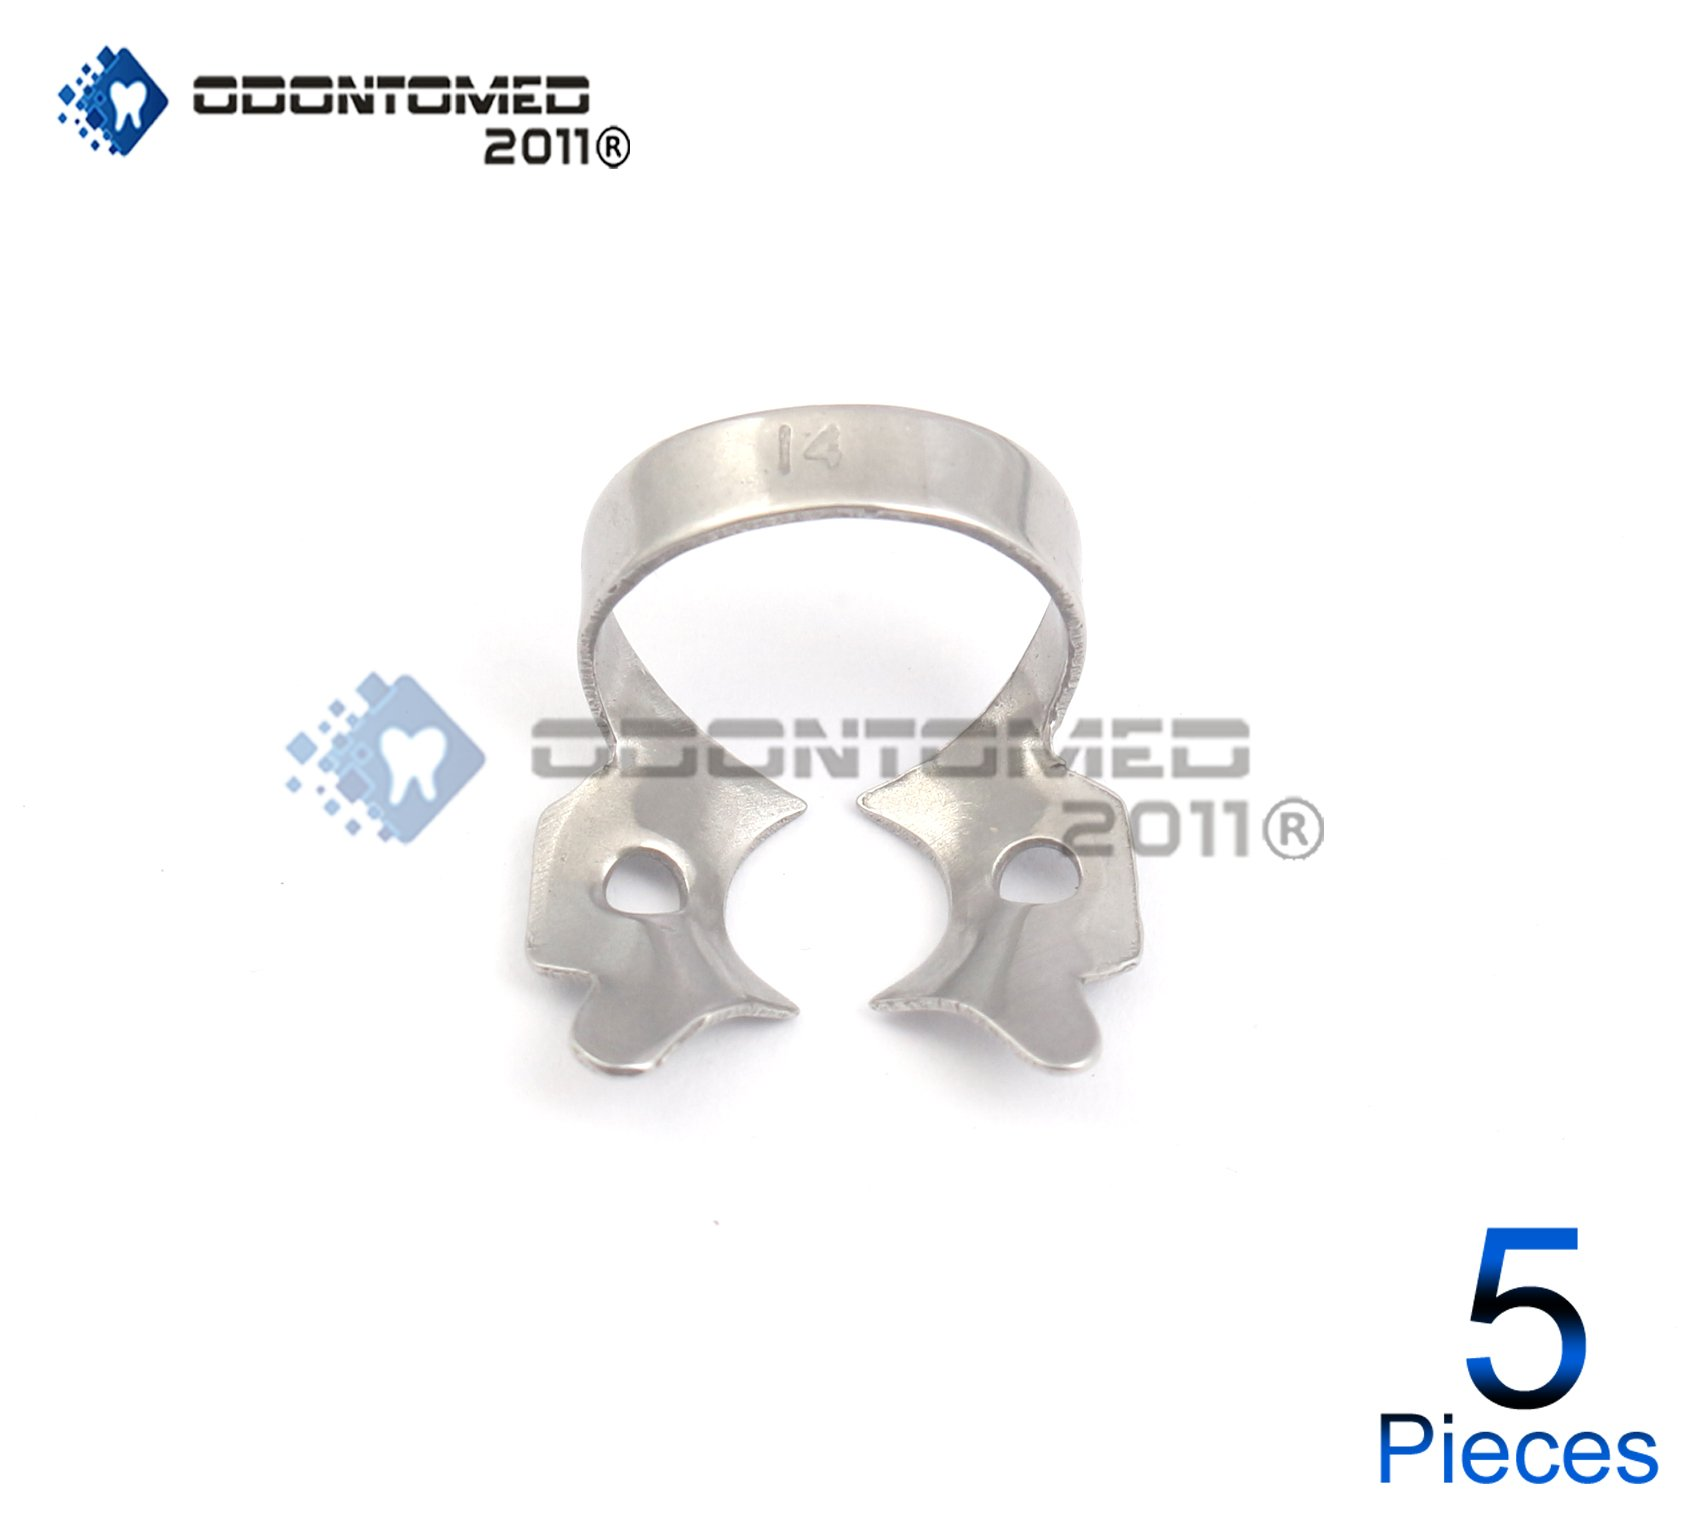 OdontoMed2011 5 PIECES ENDODONTIC RUBBER DAM CLAMP # 14 DENTAL INSTRUMENTS